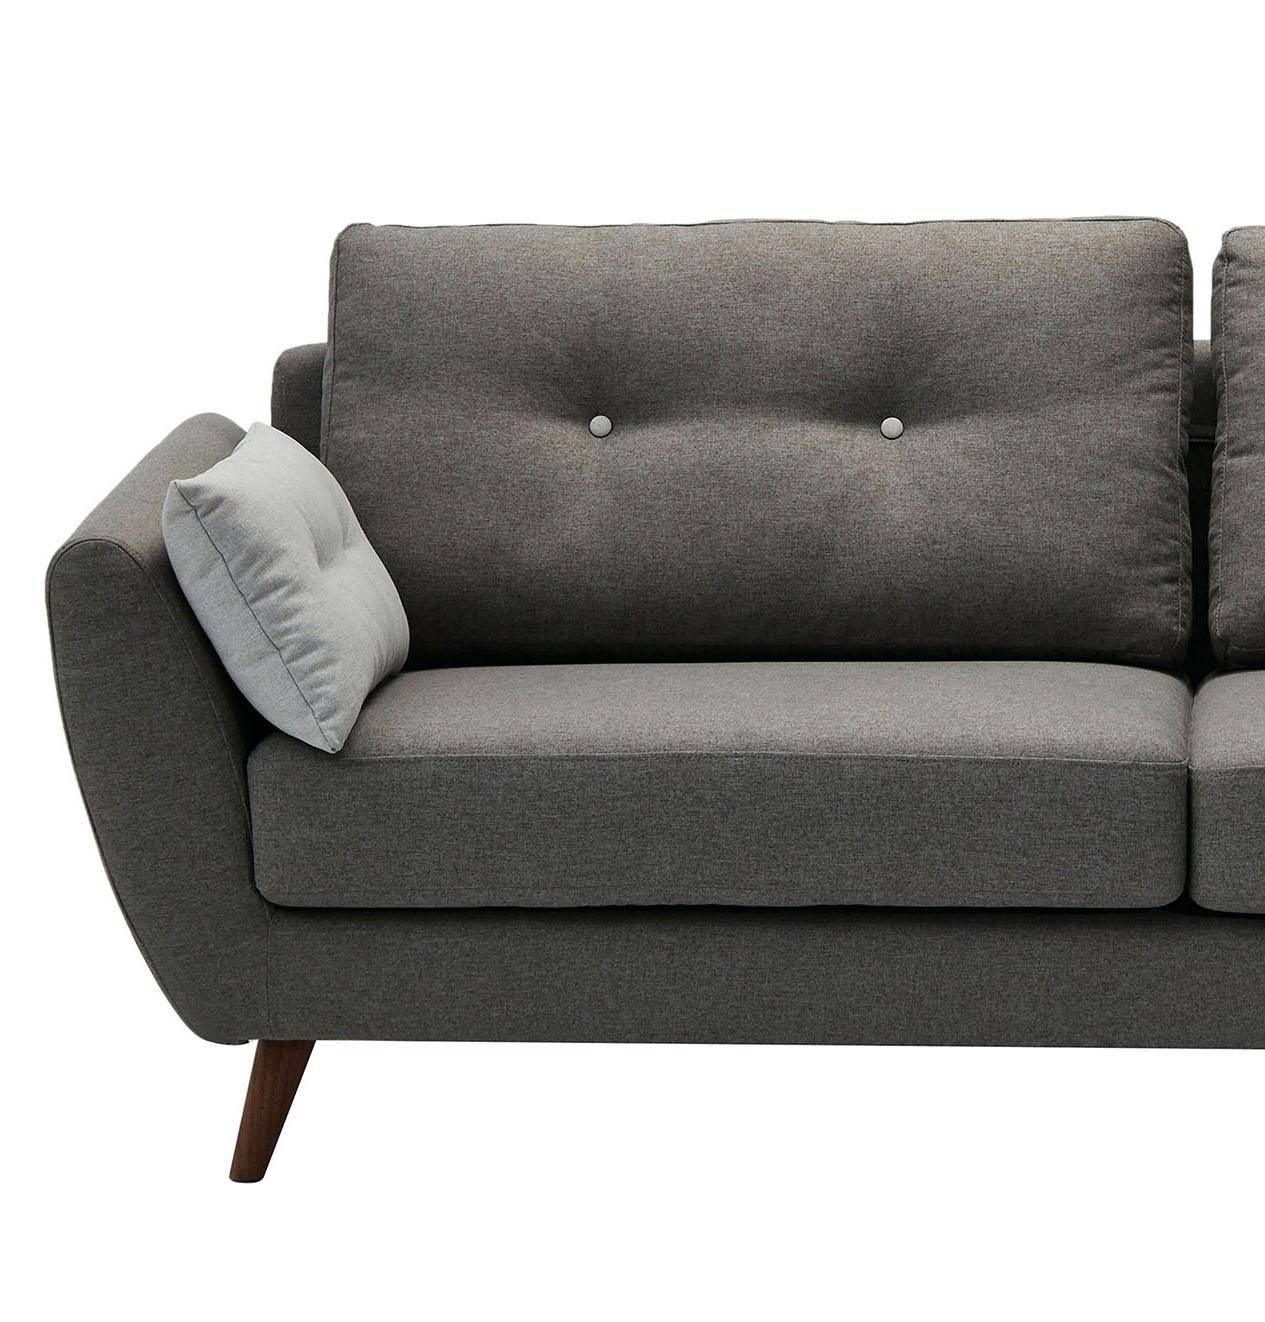 Prime Esf 707 Modern Chic Grey Fabric Living Room Sofa Loveseat Andrewgaddart Wooden Chair Designs For Living Room Andrewgaddartcom